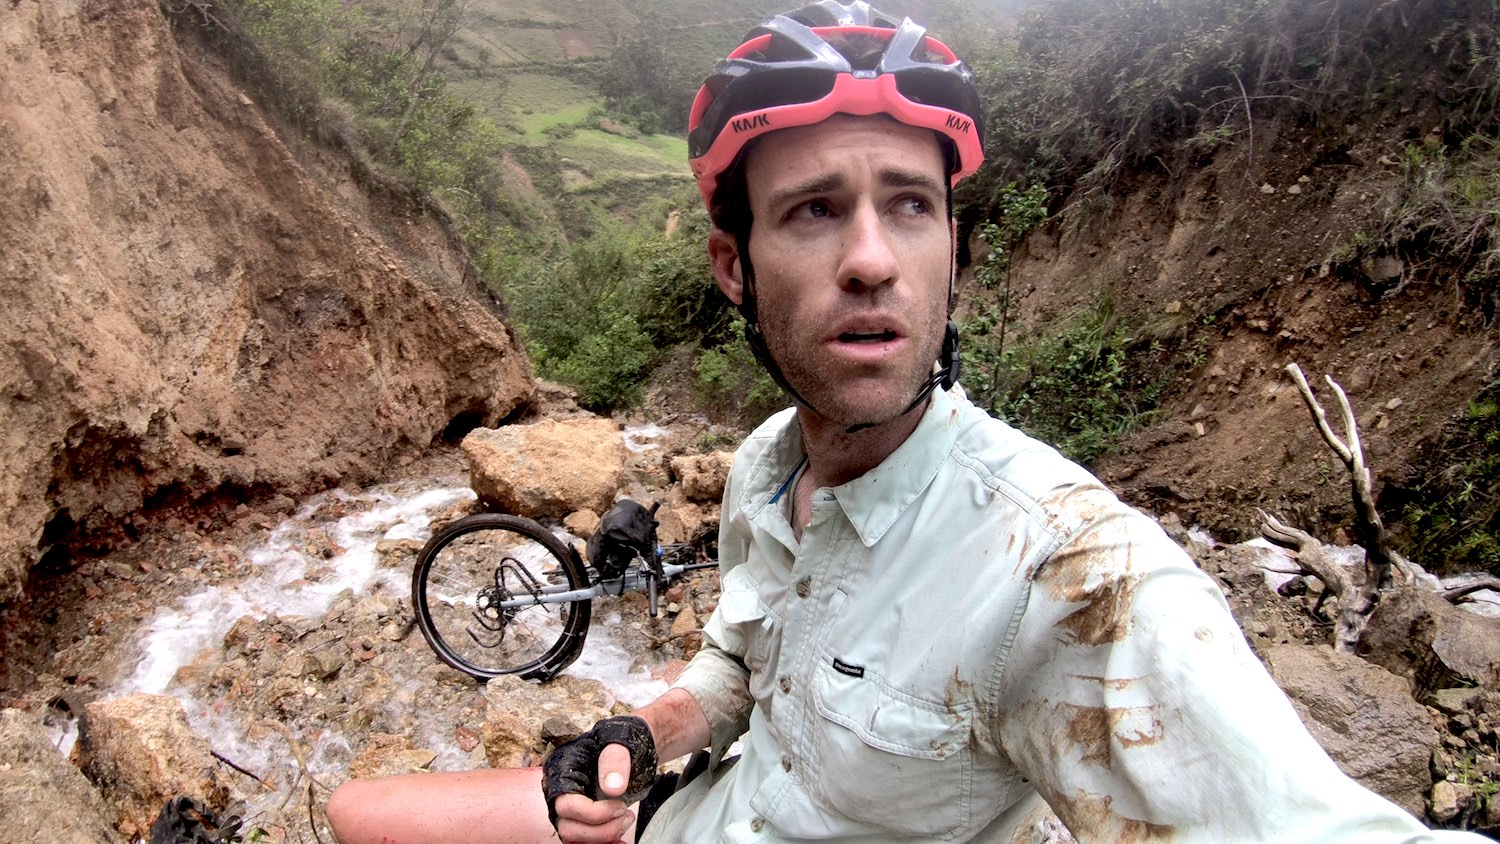 Bike Accident Peru 2